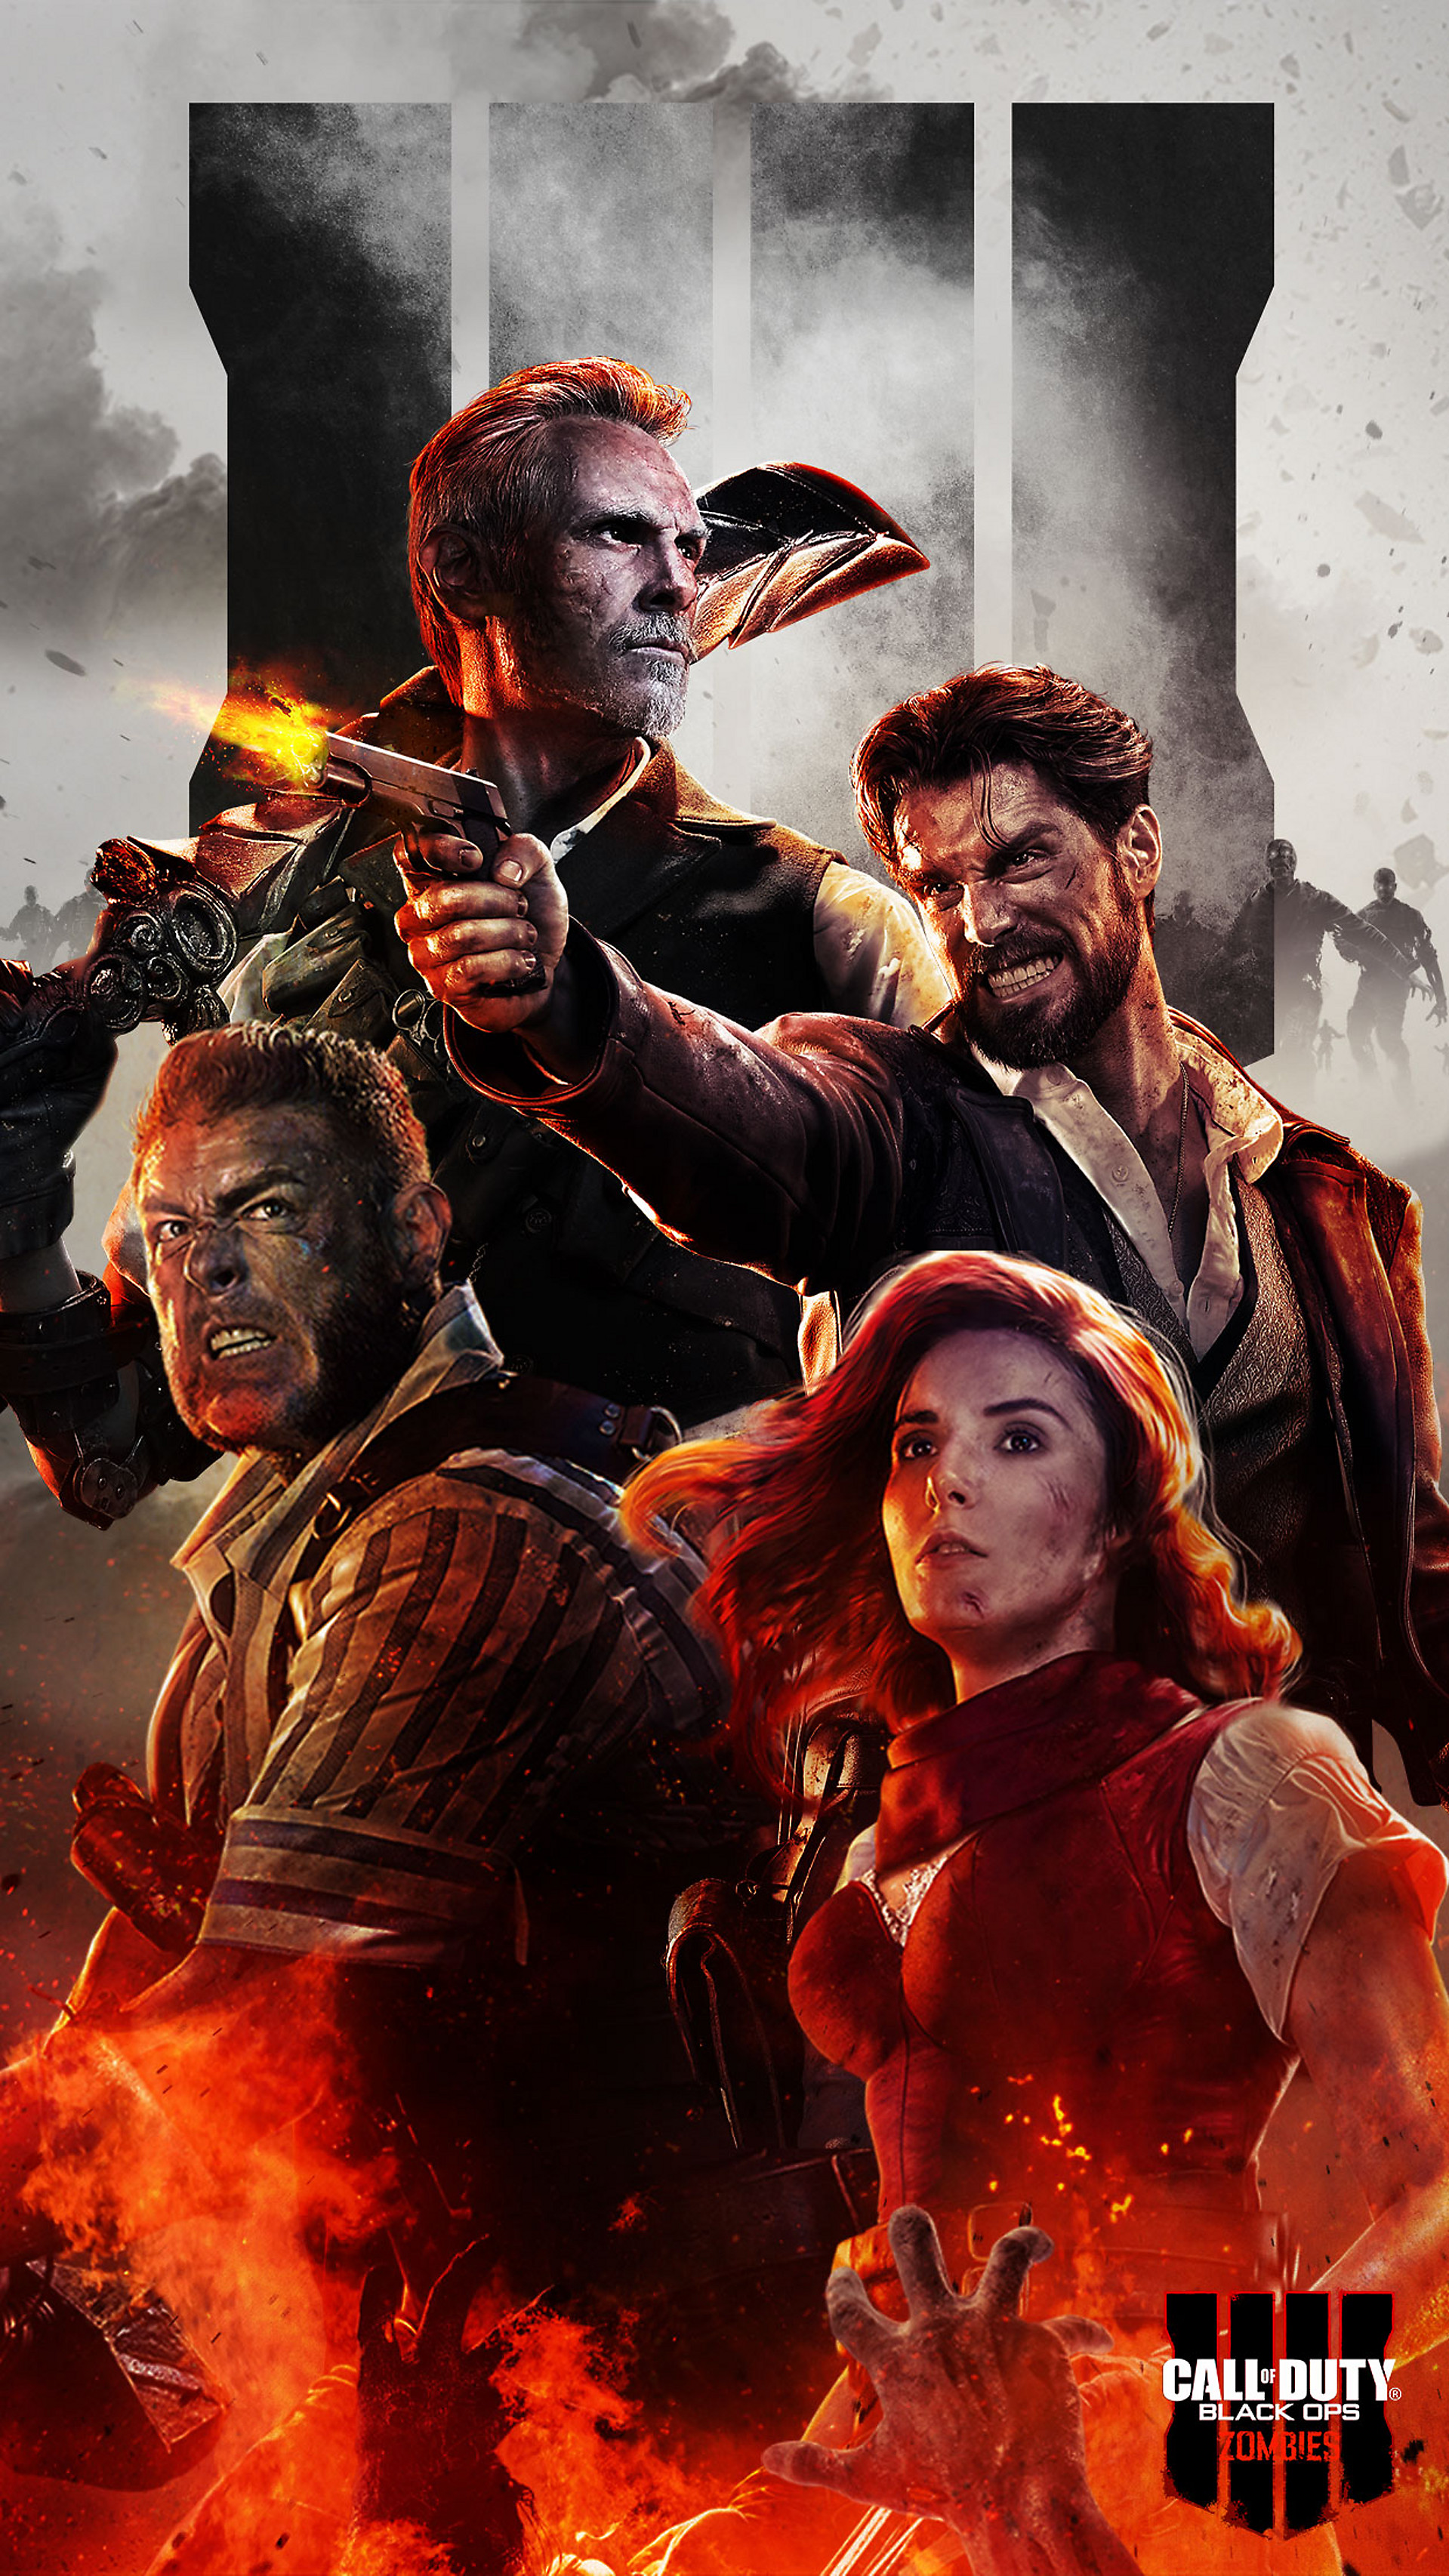 Call Of Duty Black Ops 4 Zombies Wallpapers Free Pictures On Greepx